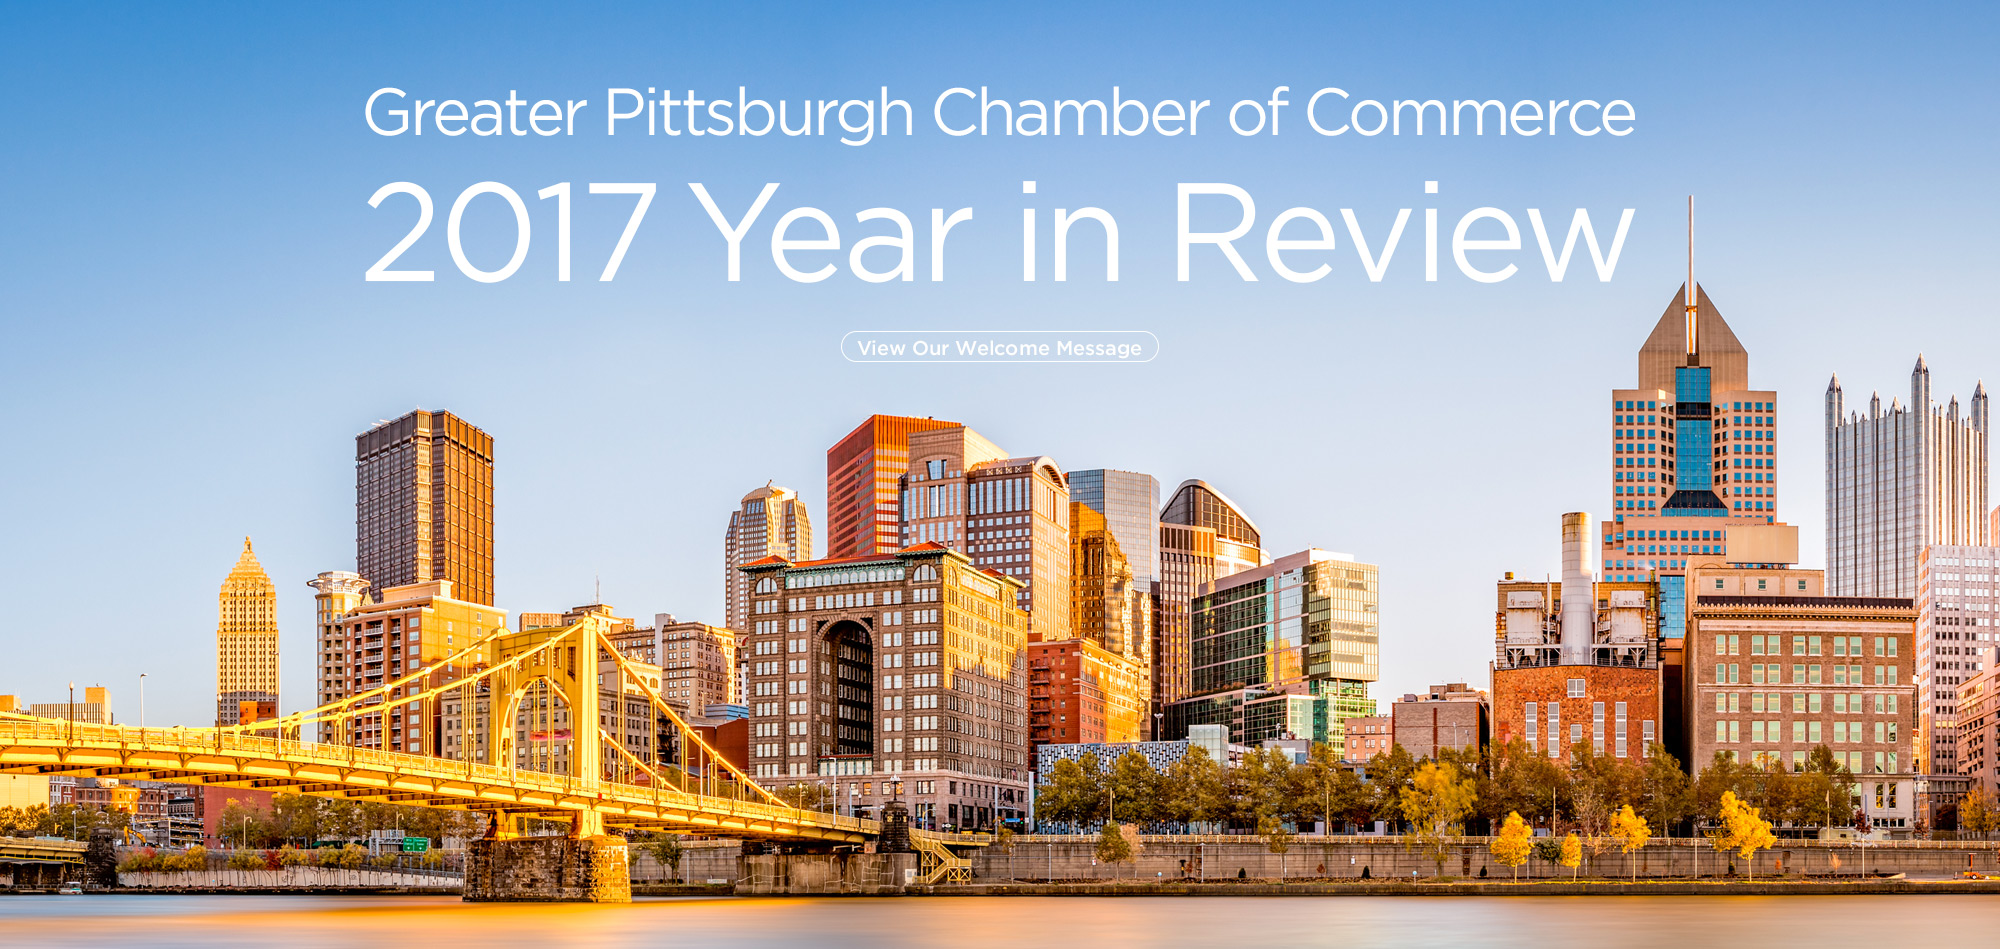 Greater Pittsburgh Chamber of Commerce 2017 Year in Review Welcome Message